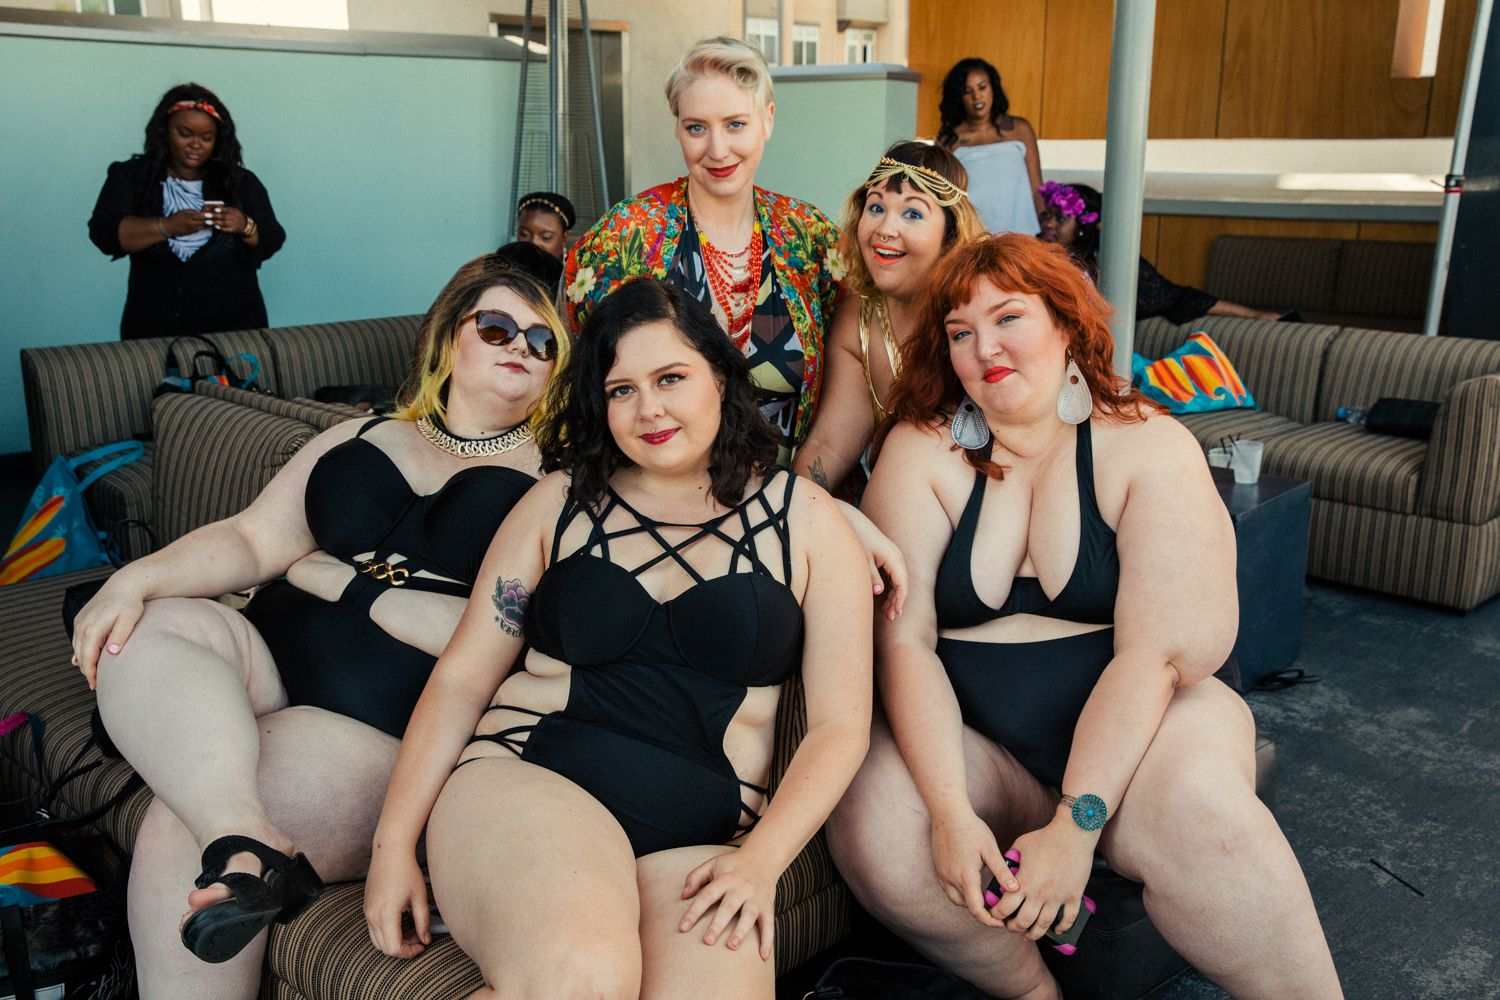 plus-size pool party - golden confidence pool party